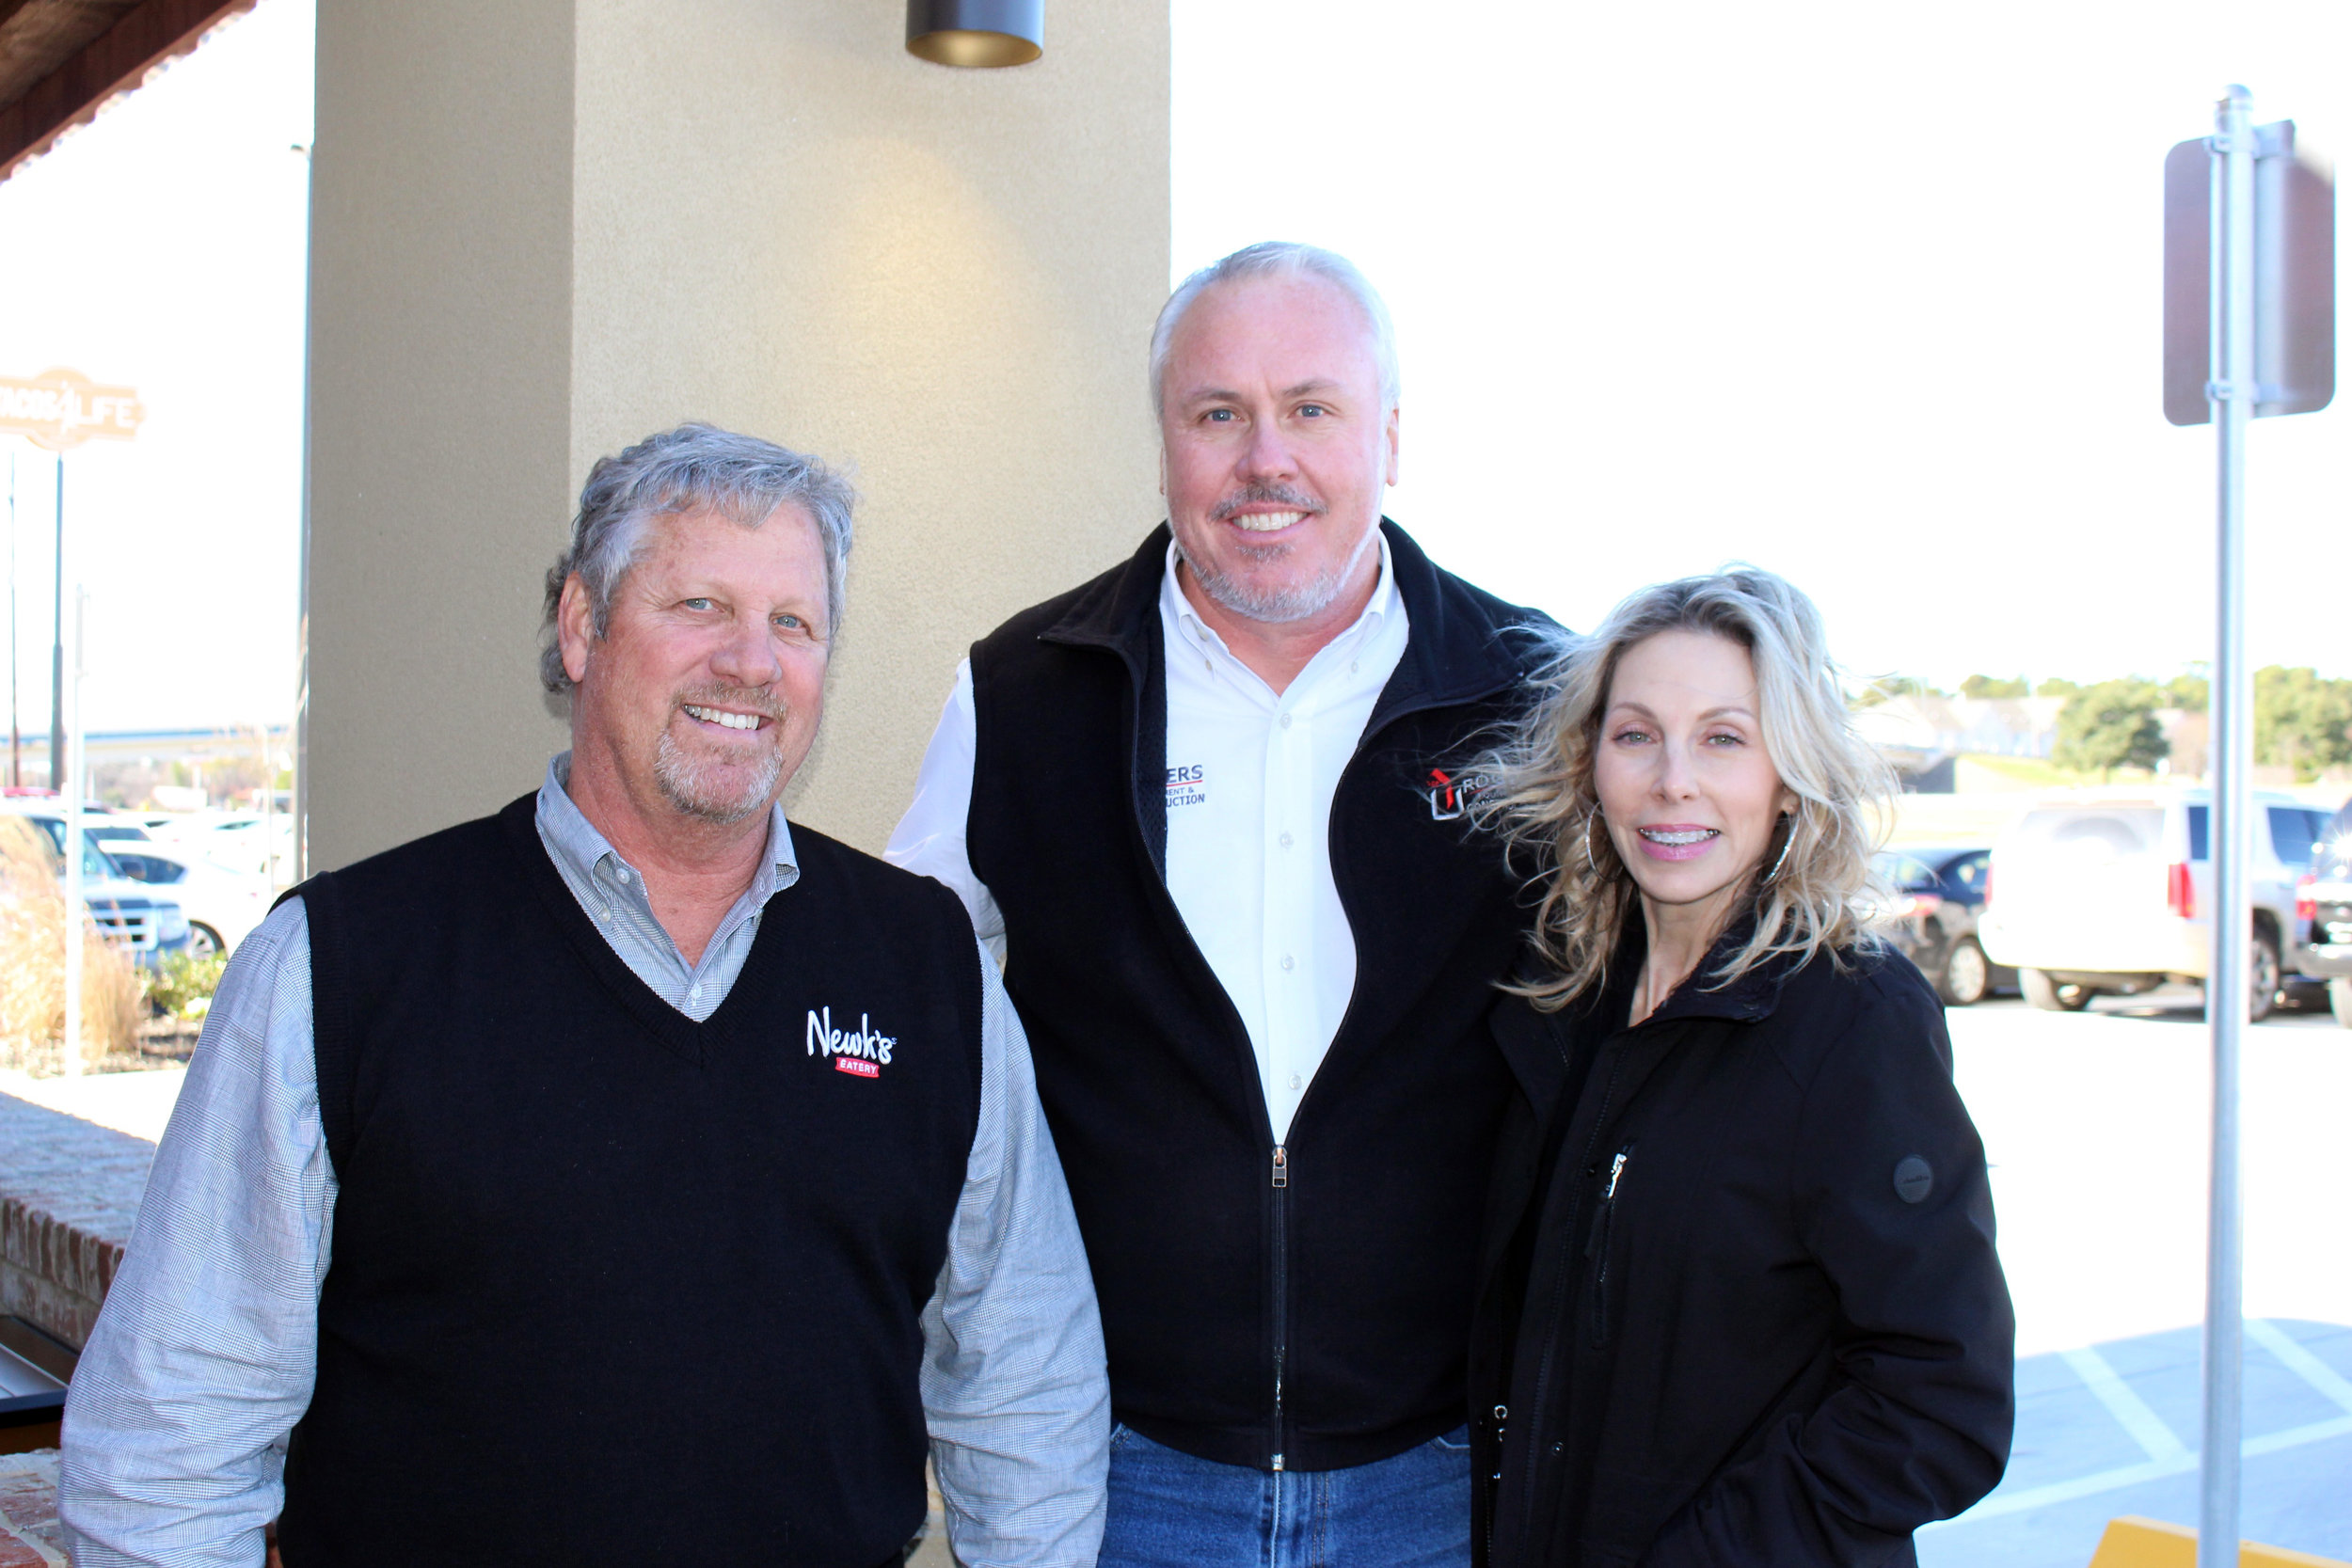 Mark Townsend, Mike Rogers and Jennifer Townsend